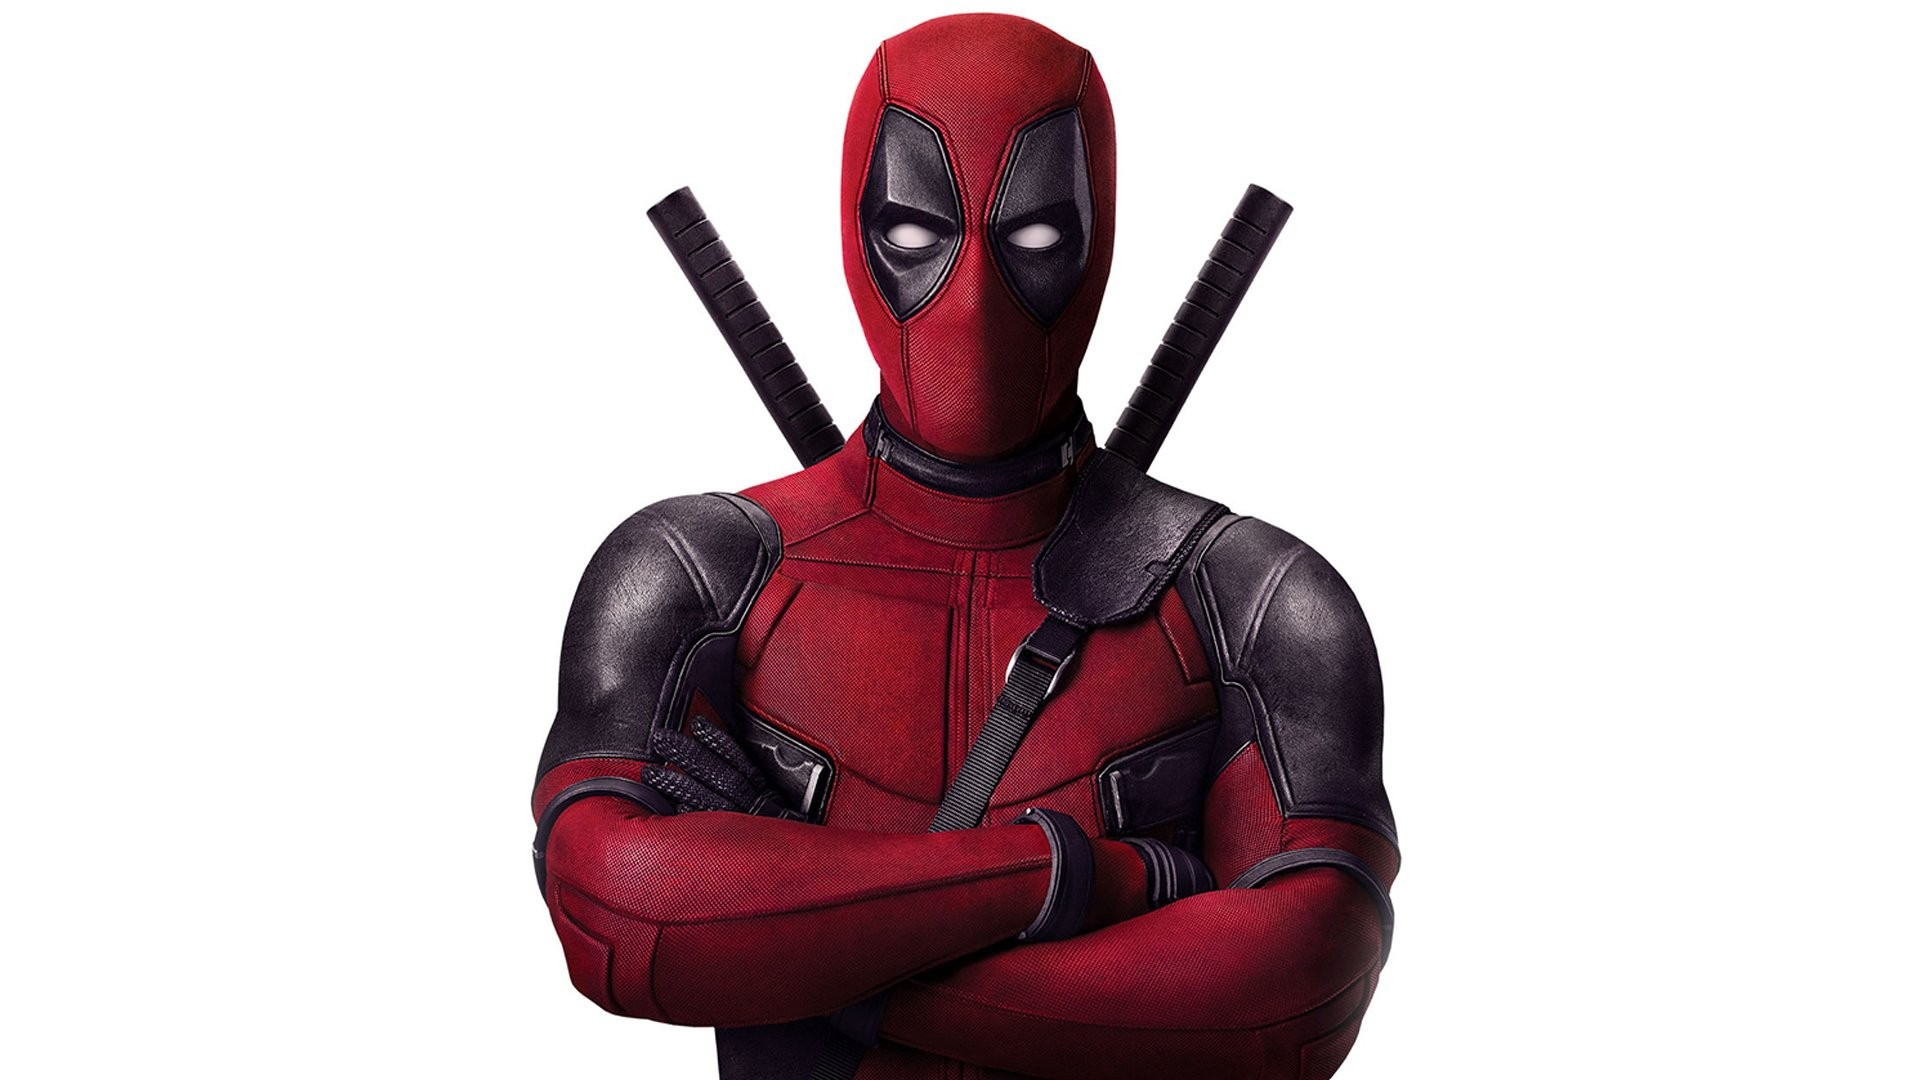 27 deadpool wallpapers download free cool full hd for Deadpool wallpaper 1920x1080